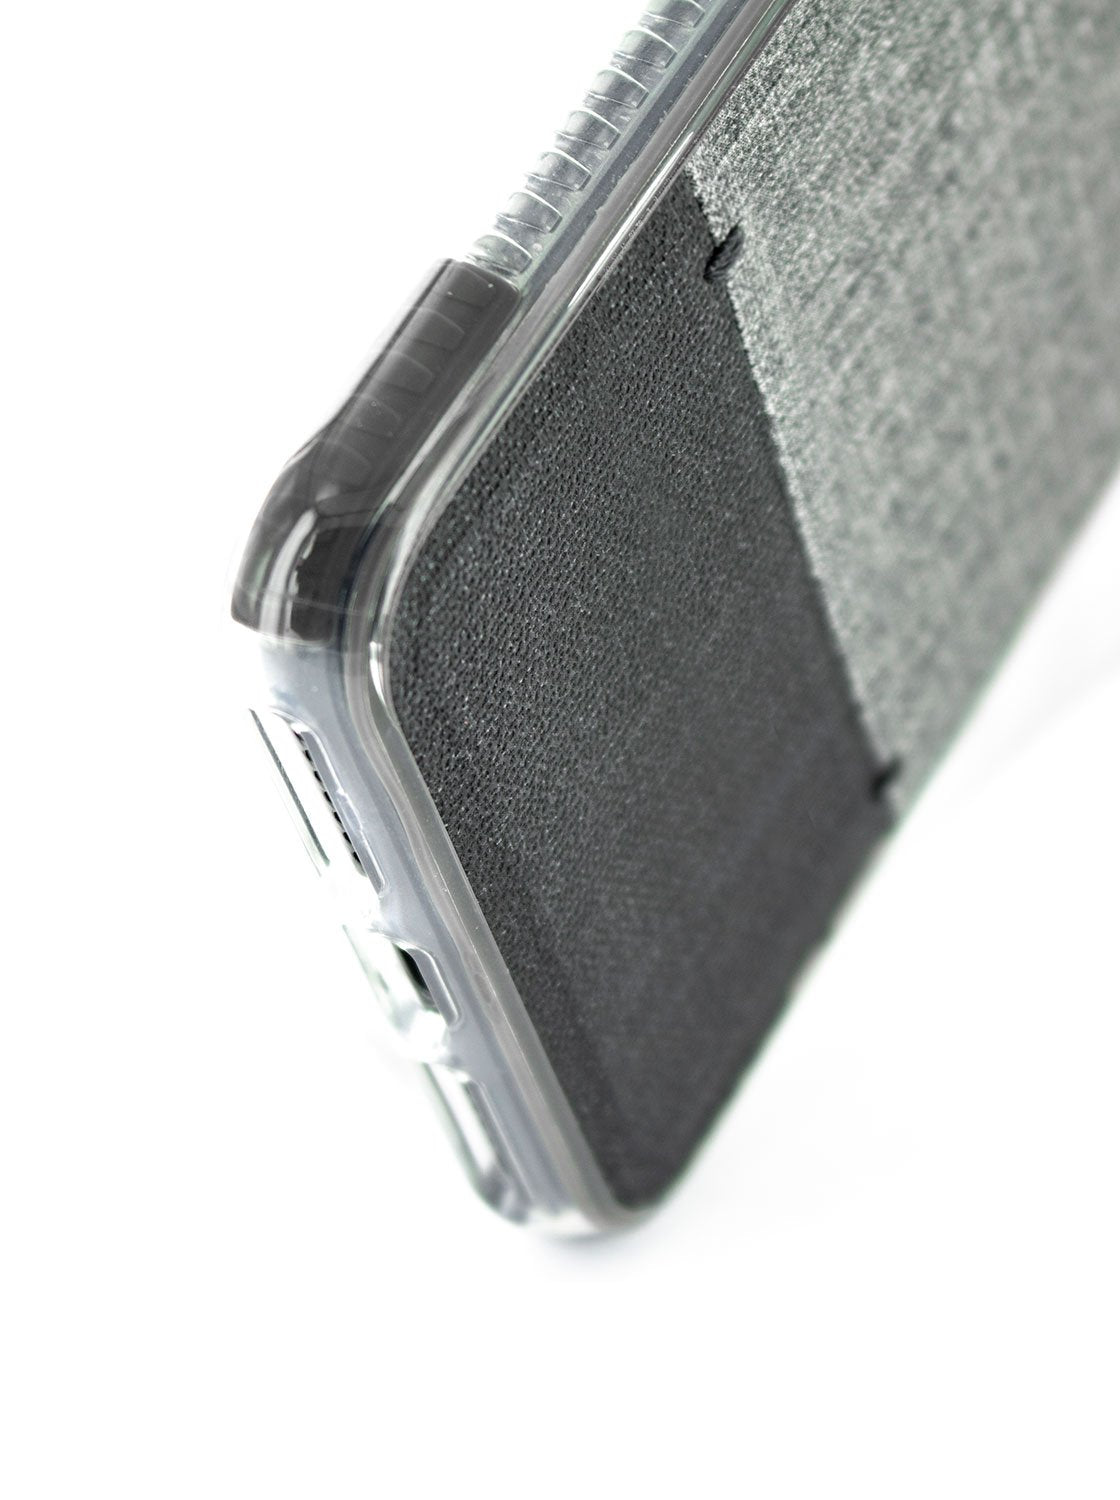 Bottom detail image of the Proporta Apple iPhone 8 Plus / 7 Plus phone case in Grey